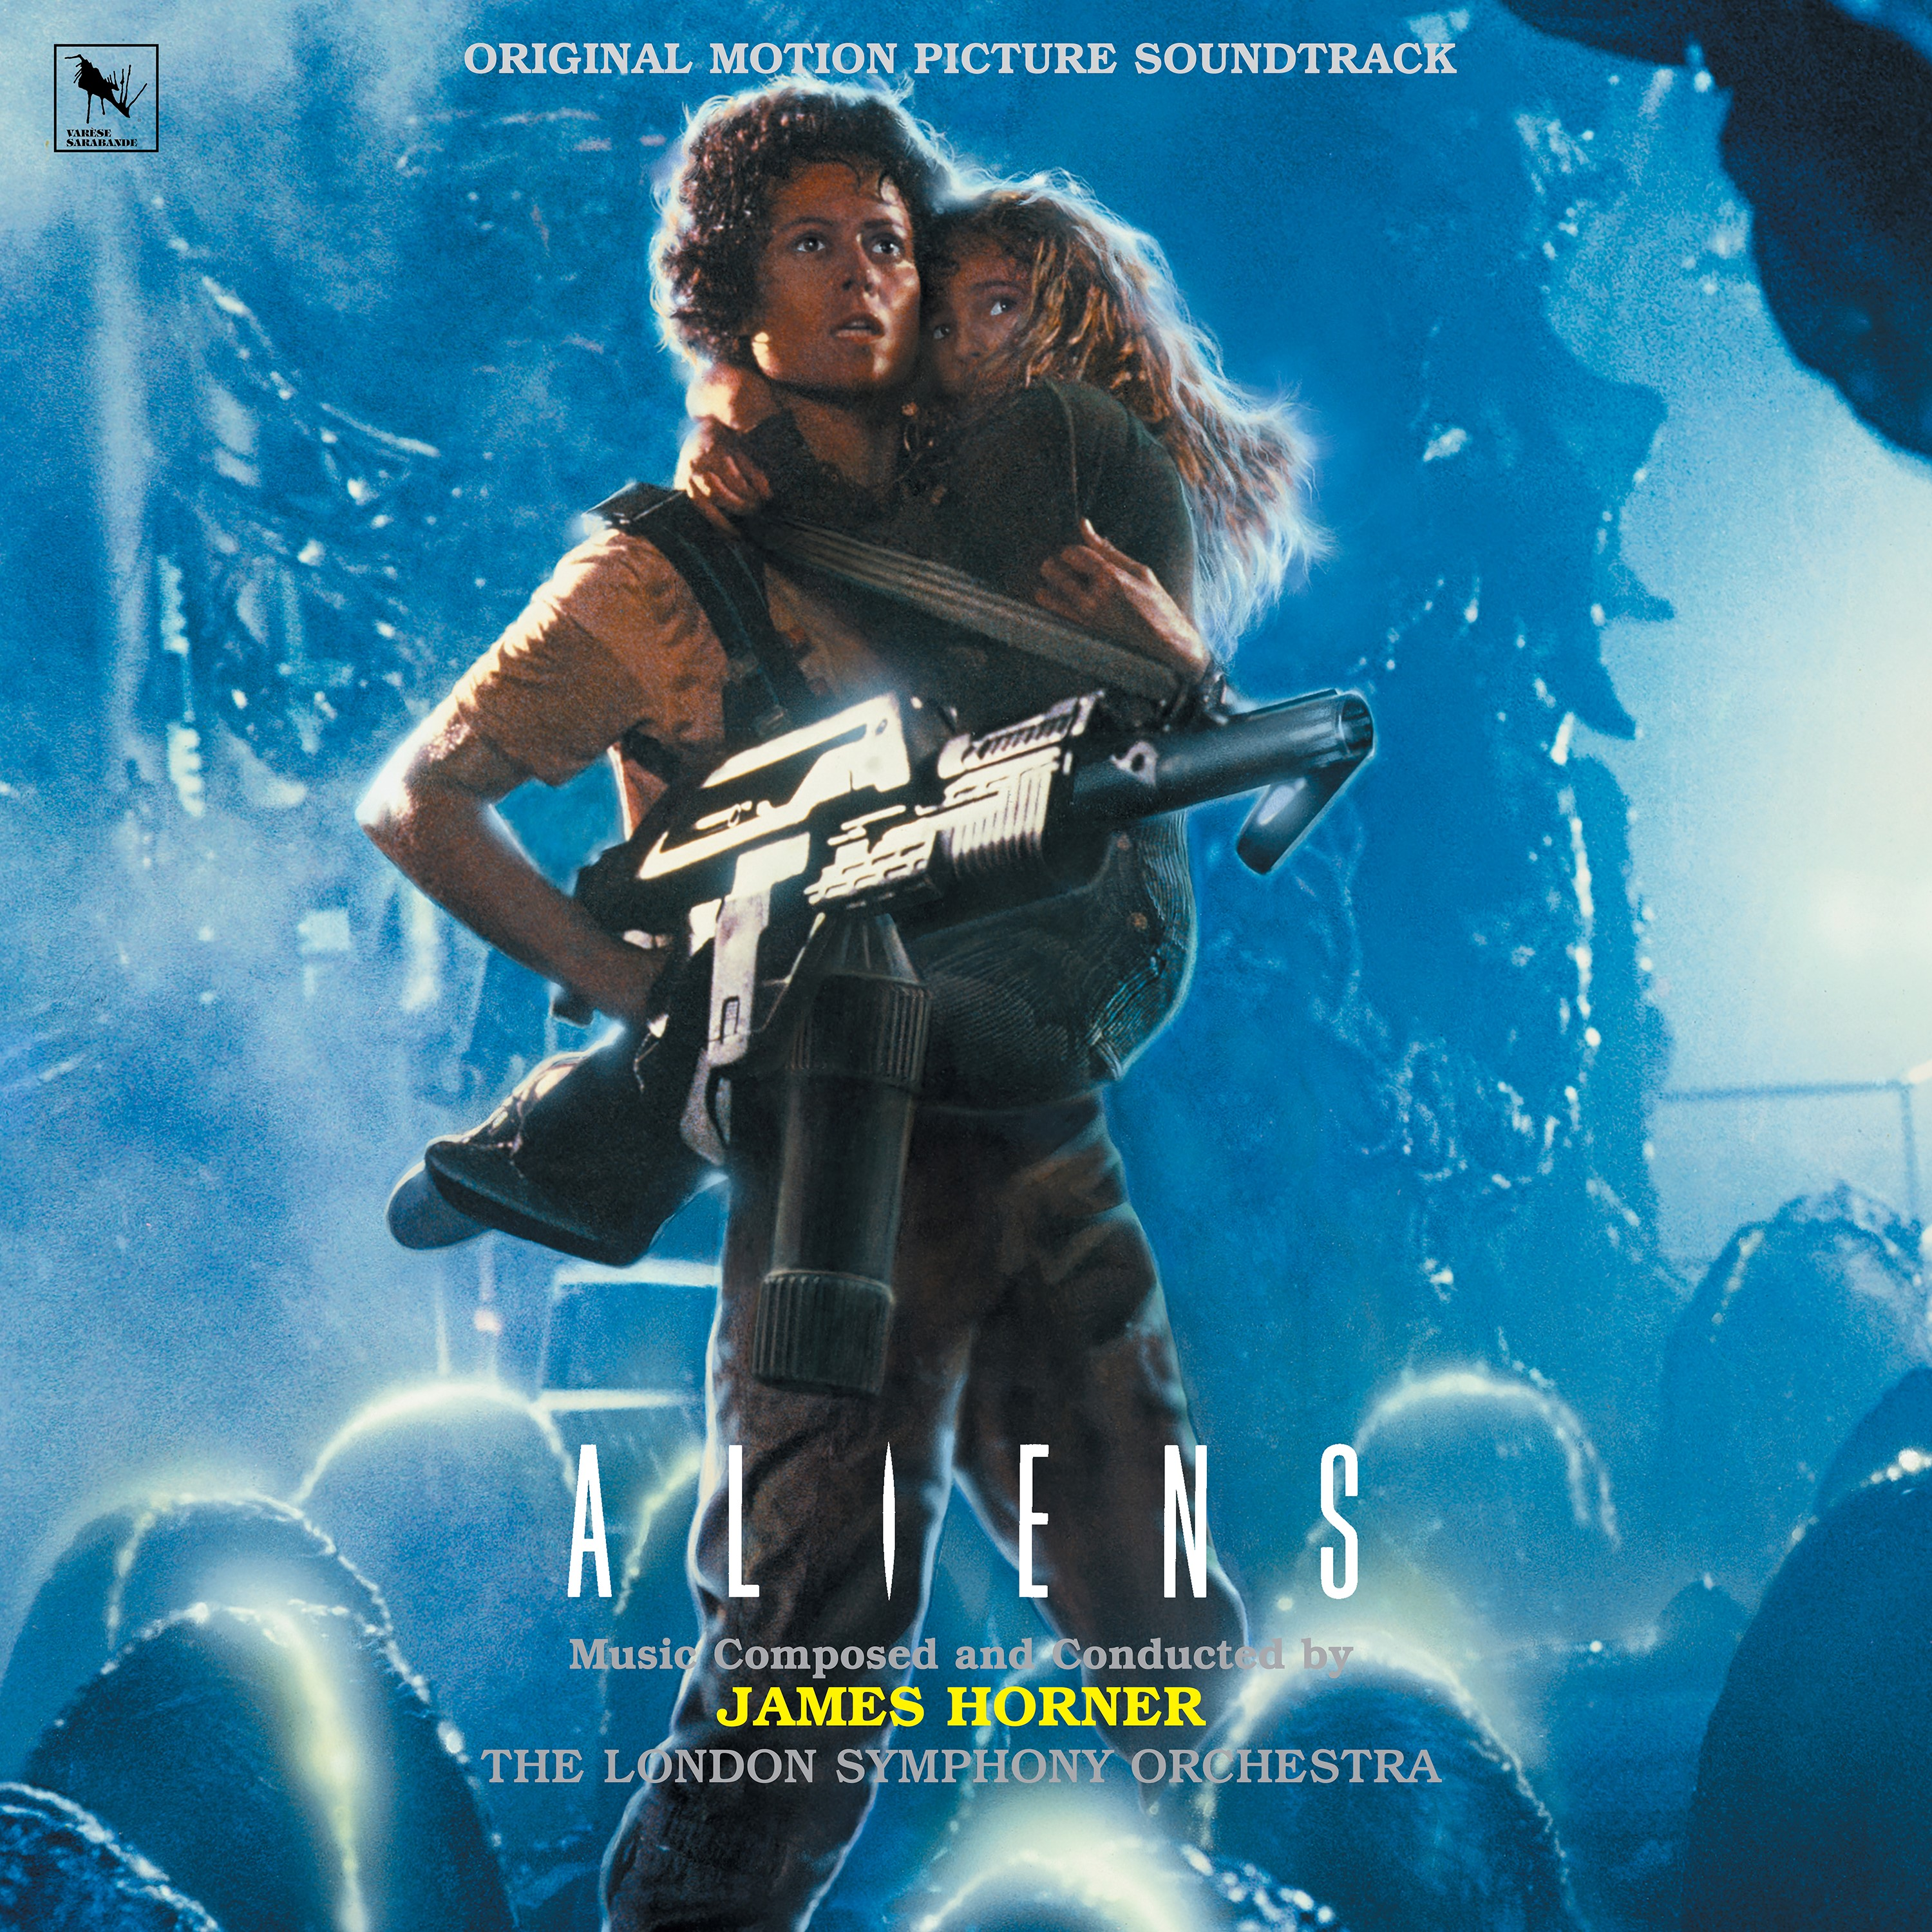 James Horner - Aliens - Original Soundtrack (35th Anniversary Edition) [RSD Drops 2021]